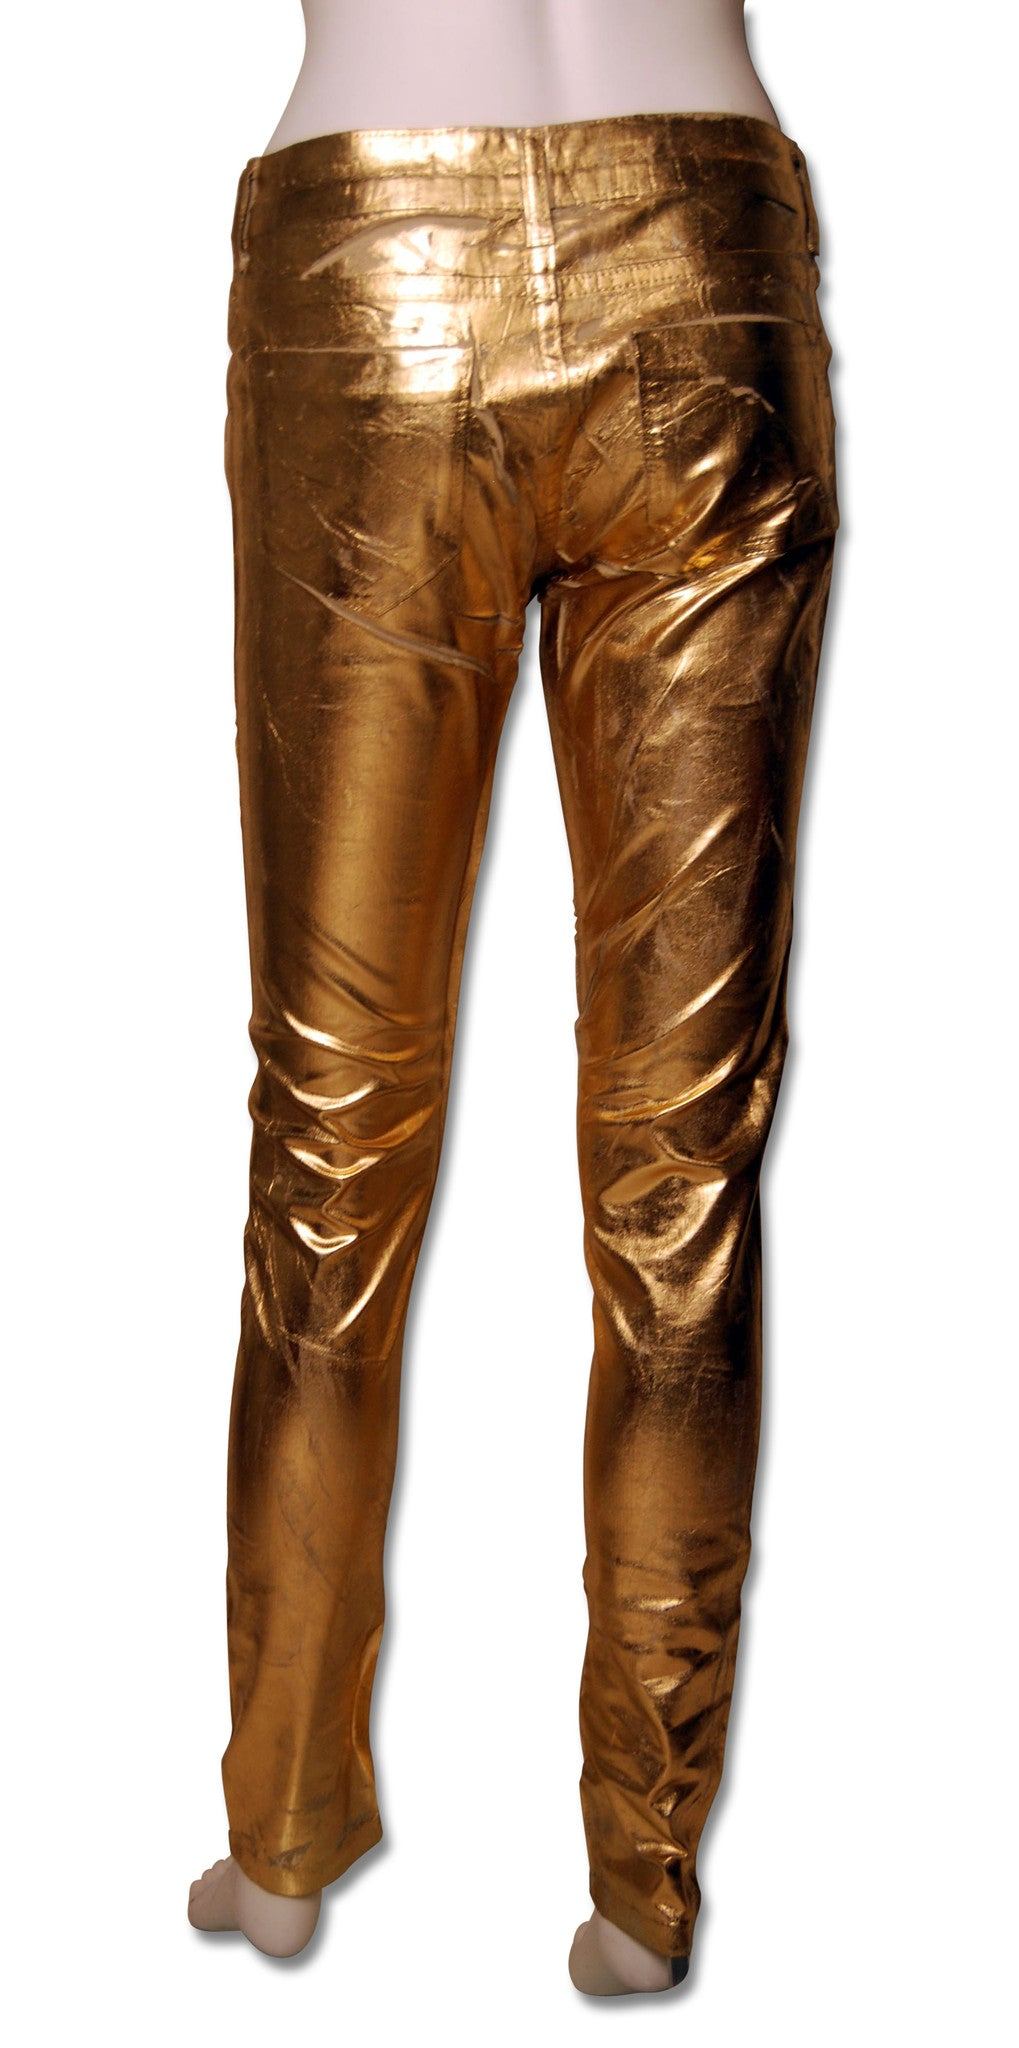 ffffd6f70bd392 ... 1  Sold Out Moto Gold Foil Jeans - refashioner - 2 ...